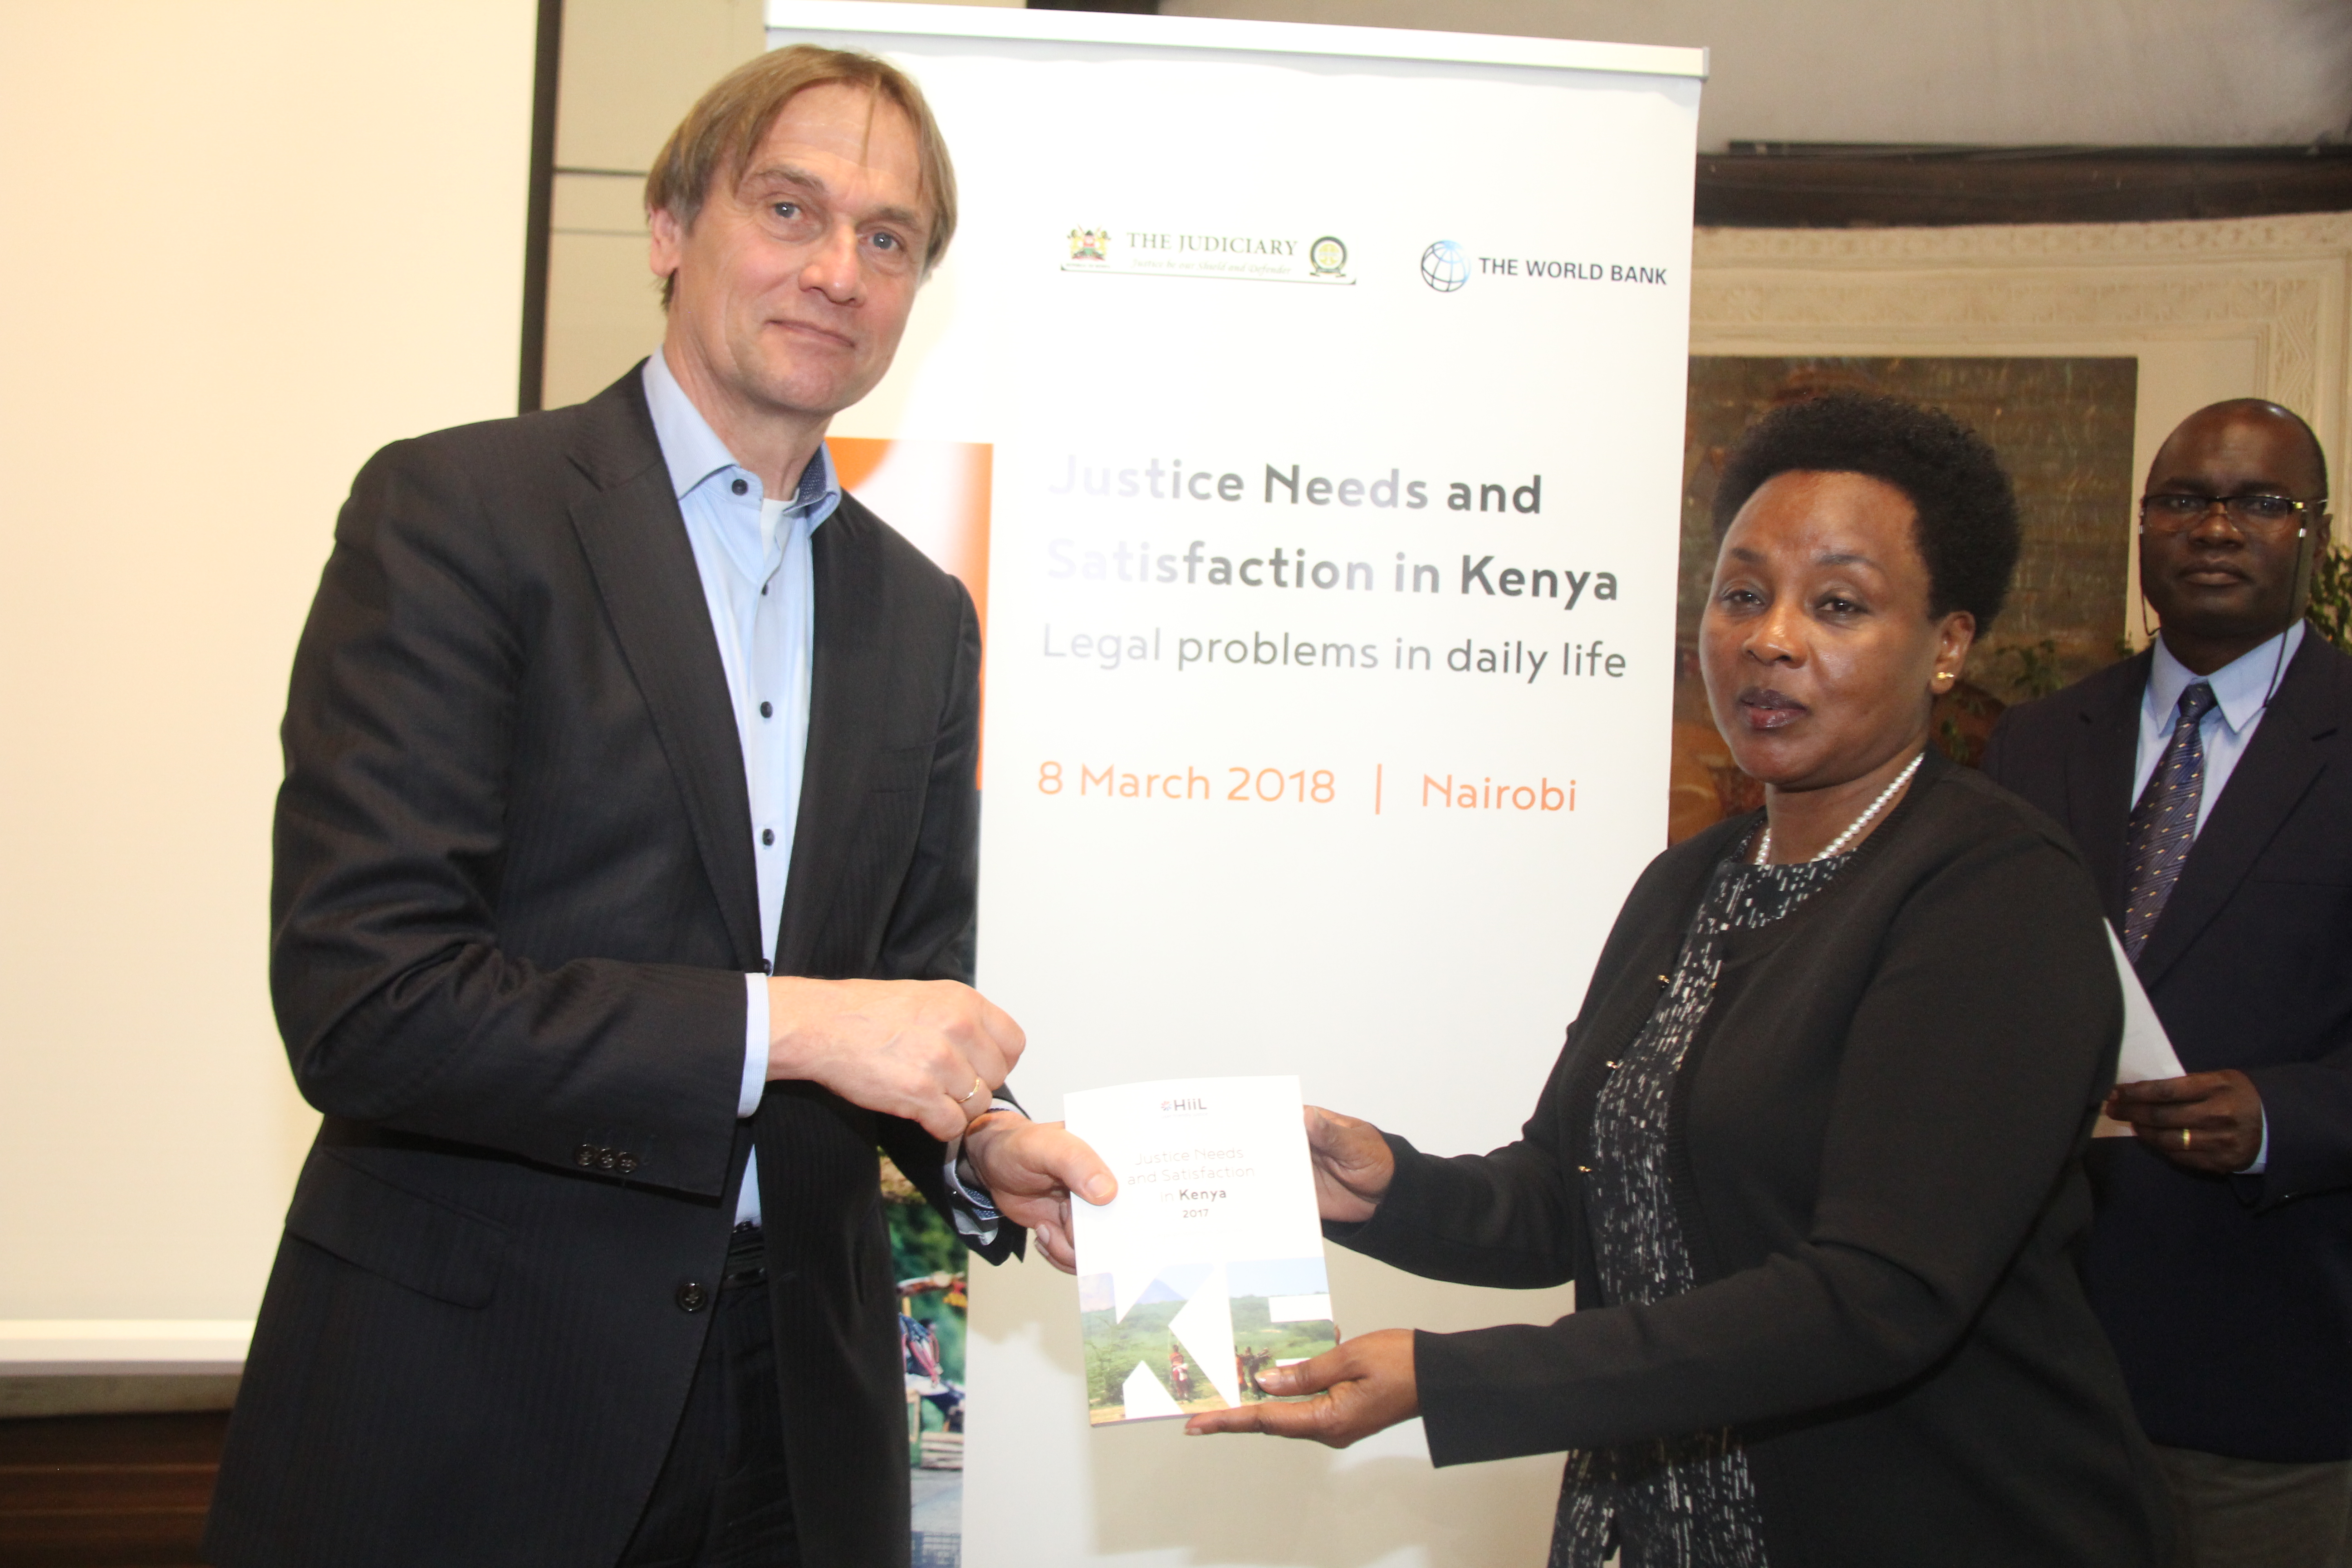 Deputy Chief Justice Philomena Mwilu receiving the JNS report from Mauritis Barendrecth,  Research Director, The Hague Institute for Institutionalization of Law (HiiL).